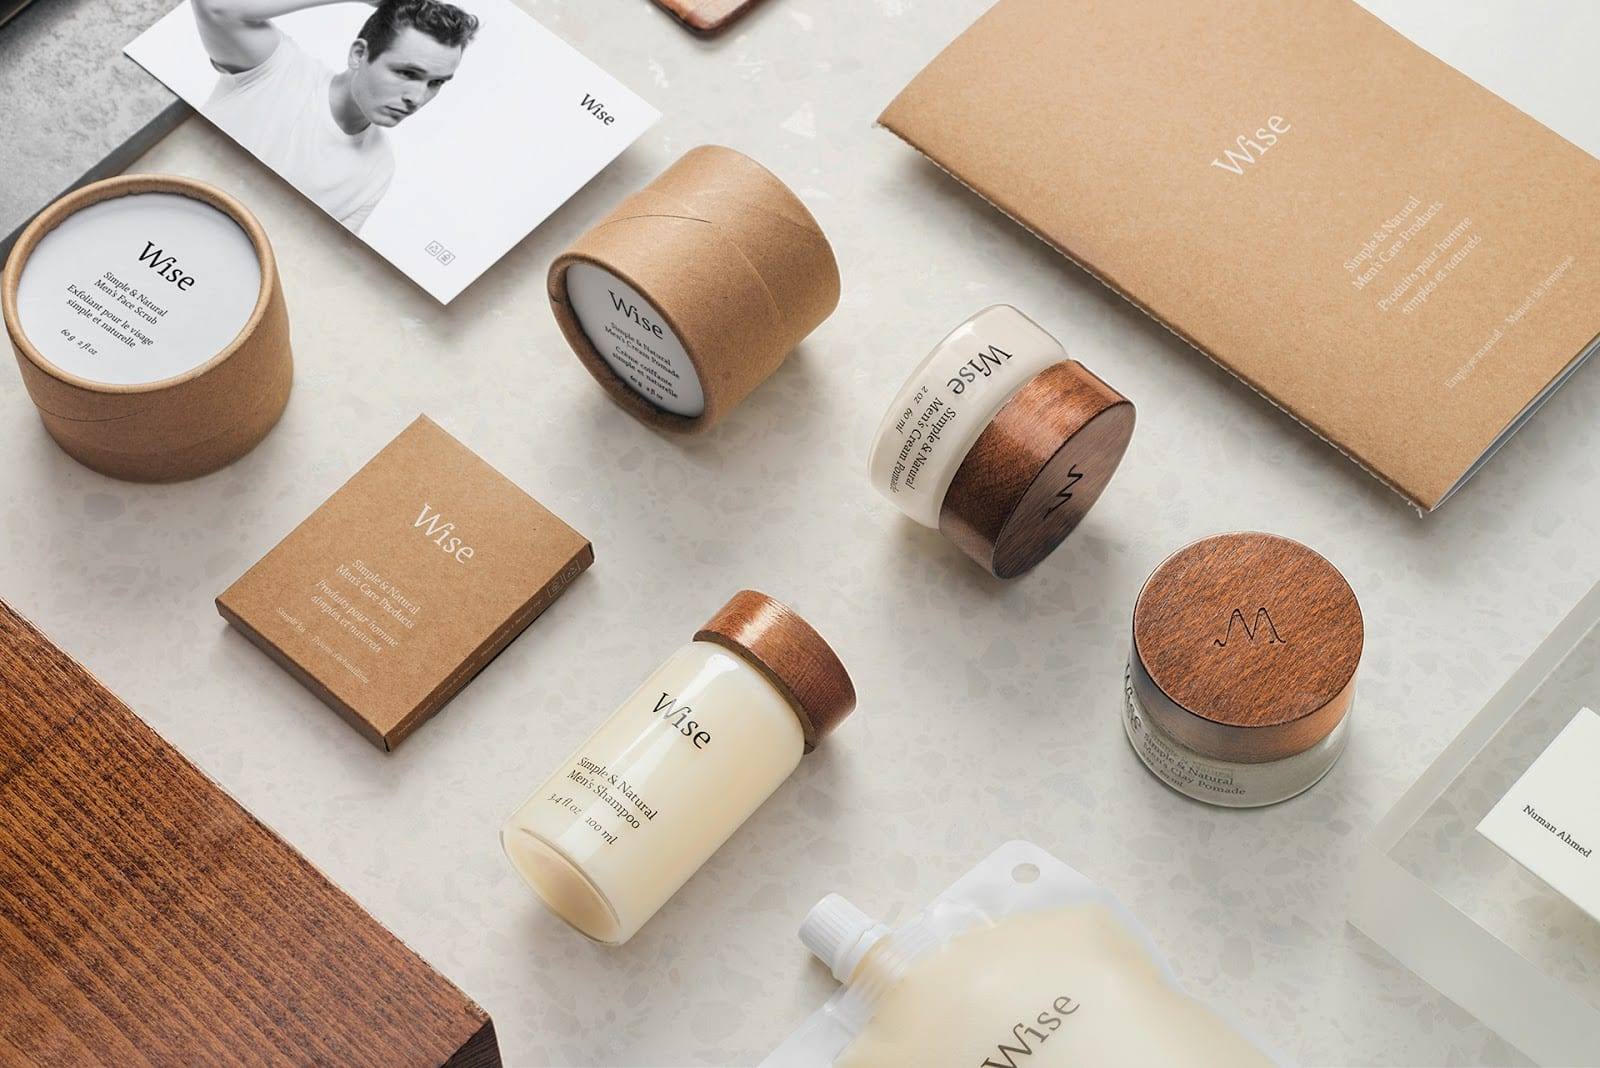 Wise Mens Care Brand Identity and Packaging 01 - Ach, tie obaly – péče Wise Men